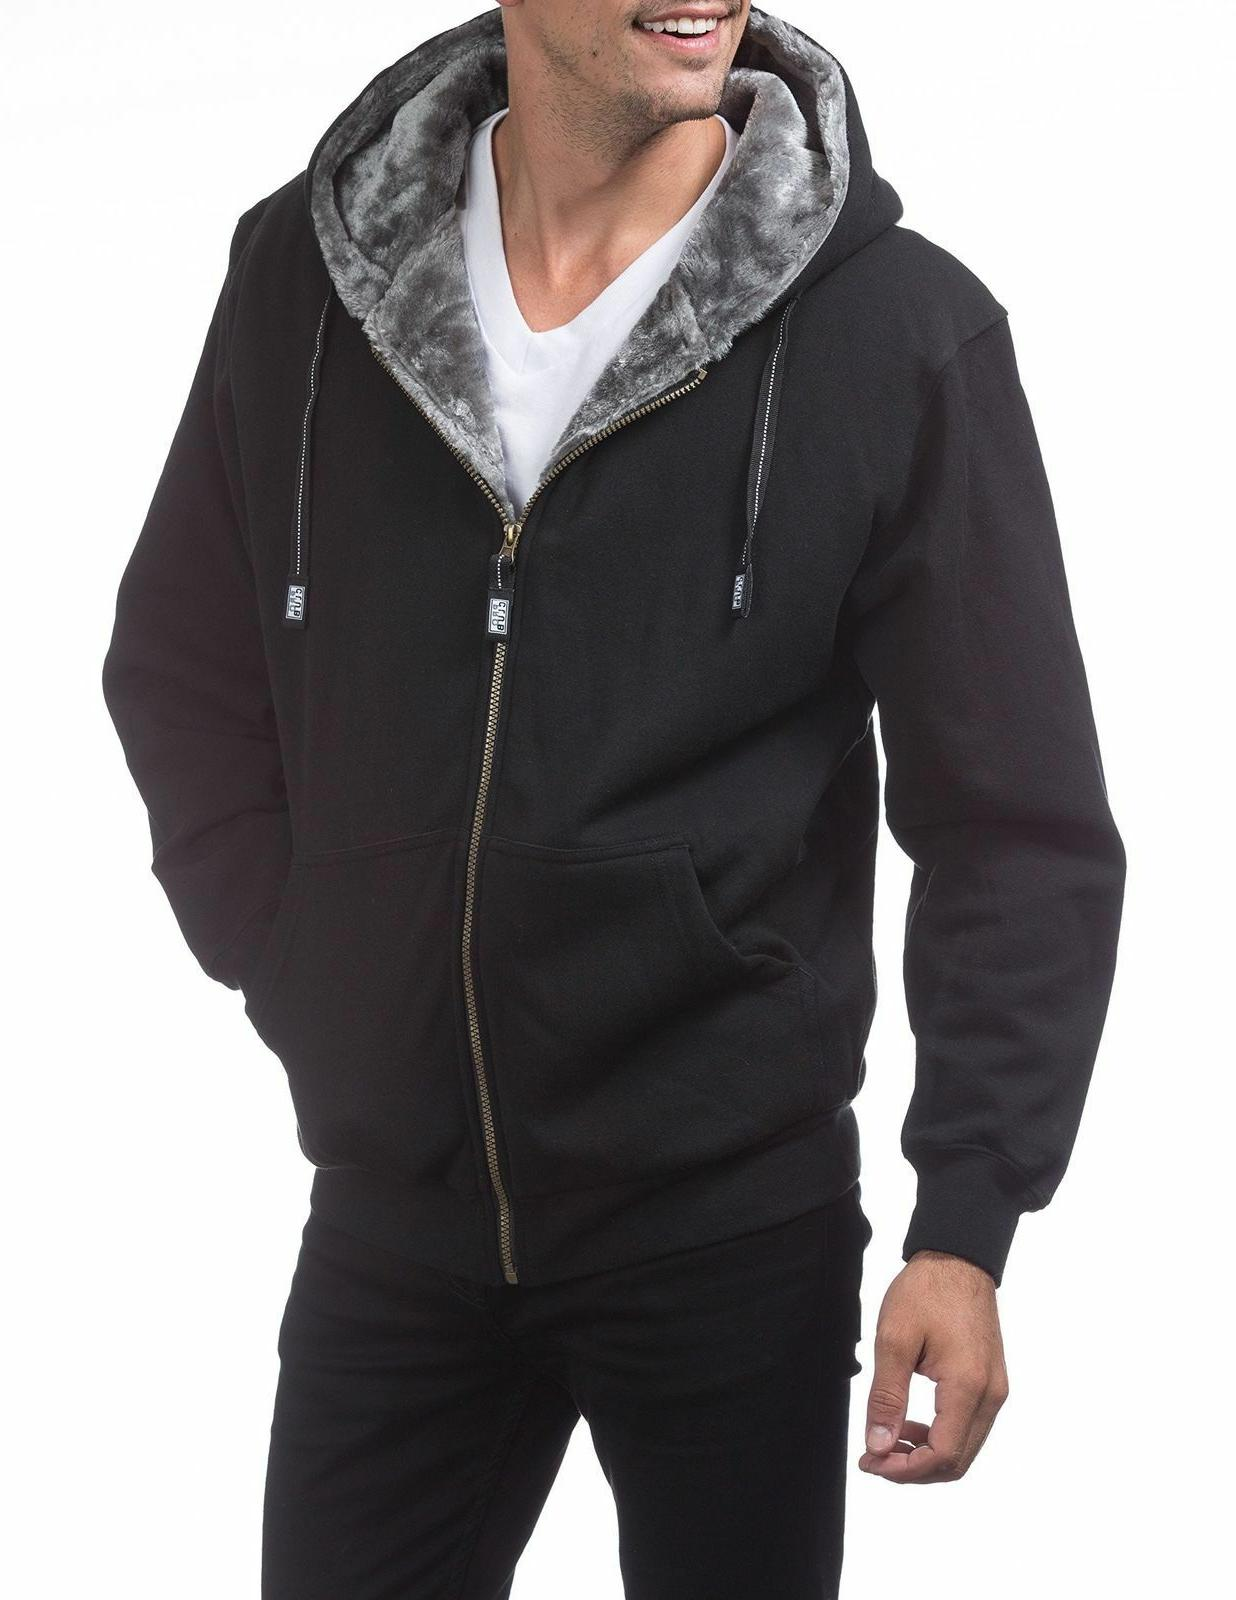 Pro Pile Full Zip Thick Jacket S-5XL